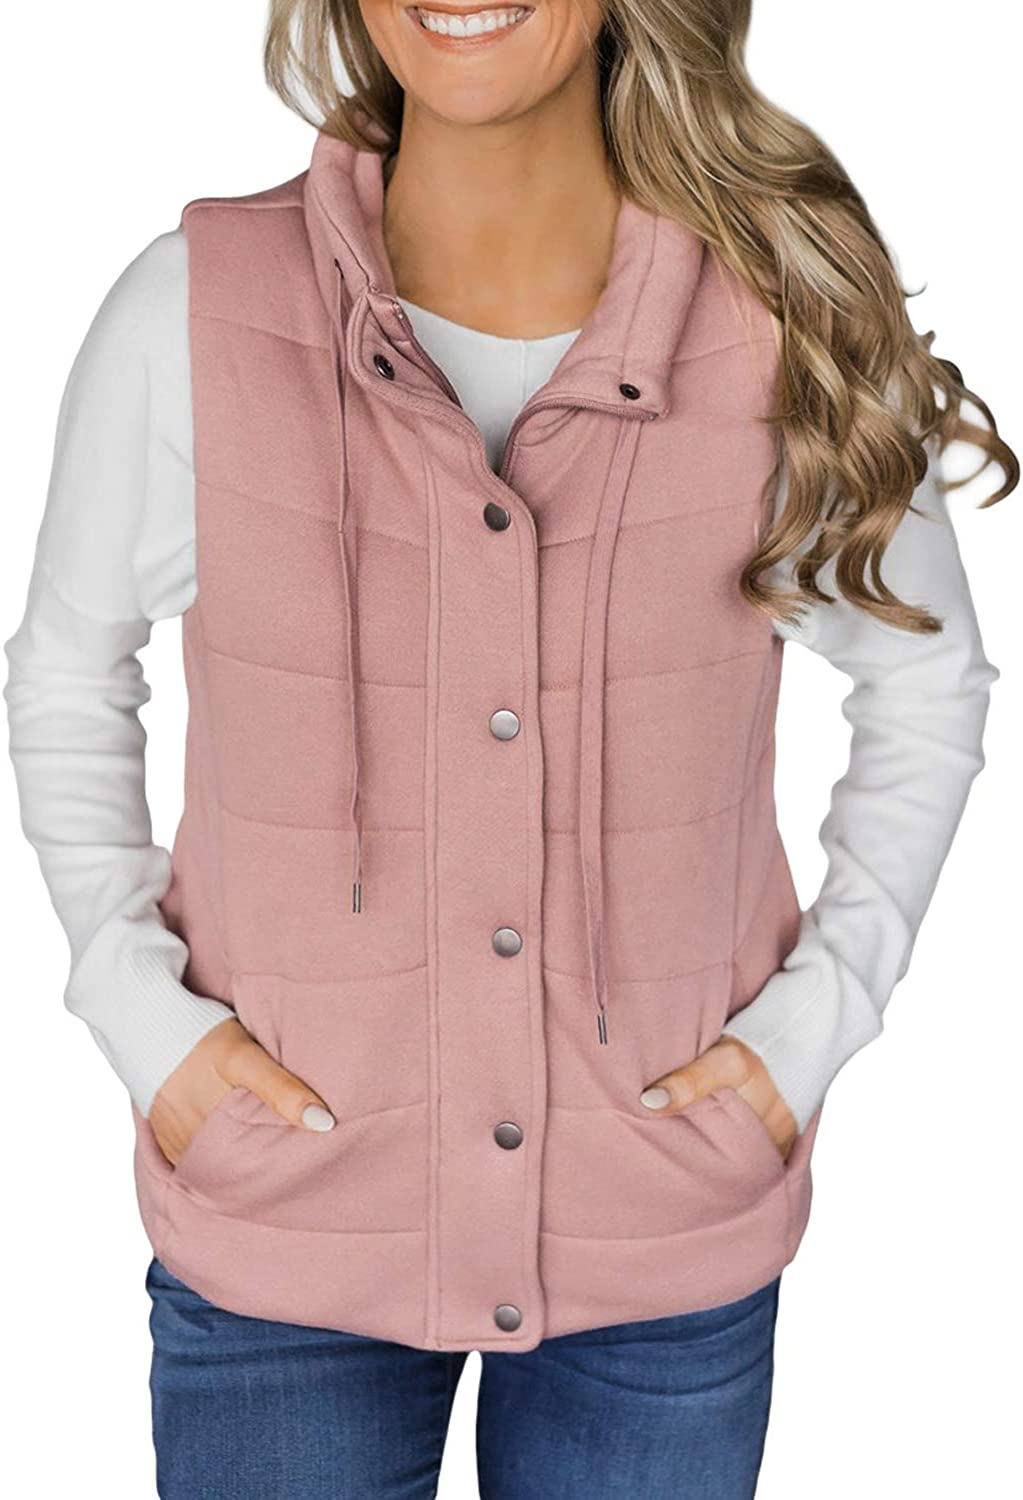 BLENCOT Women's Lightweight Quilted Zip and Snaps Up Puffer Vest Drawstring Jacket Outerwear Gilet